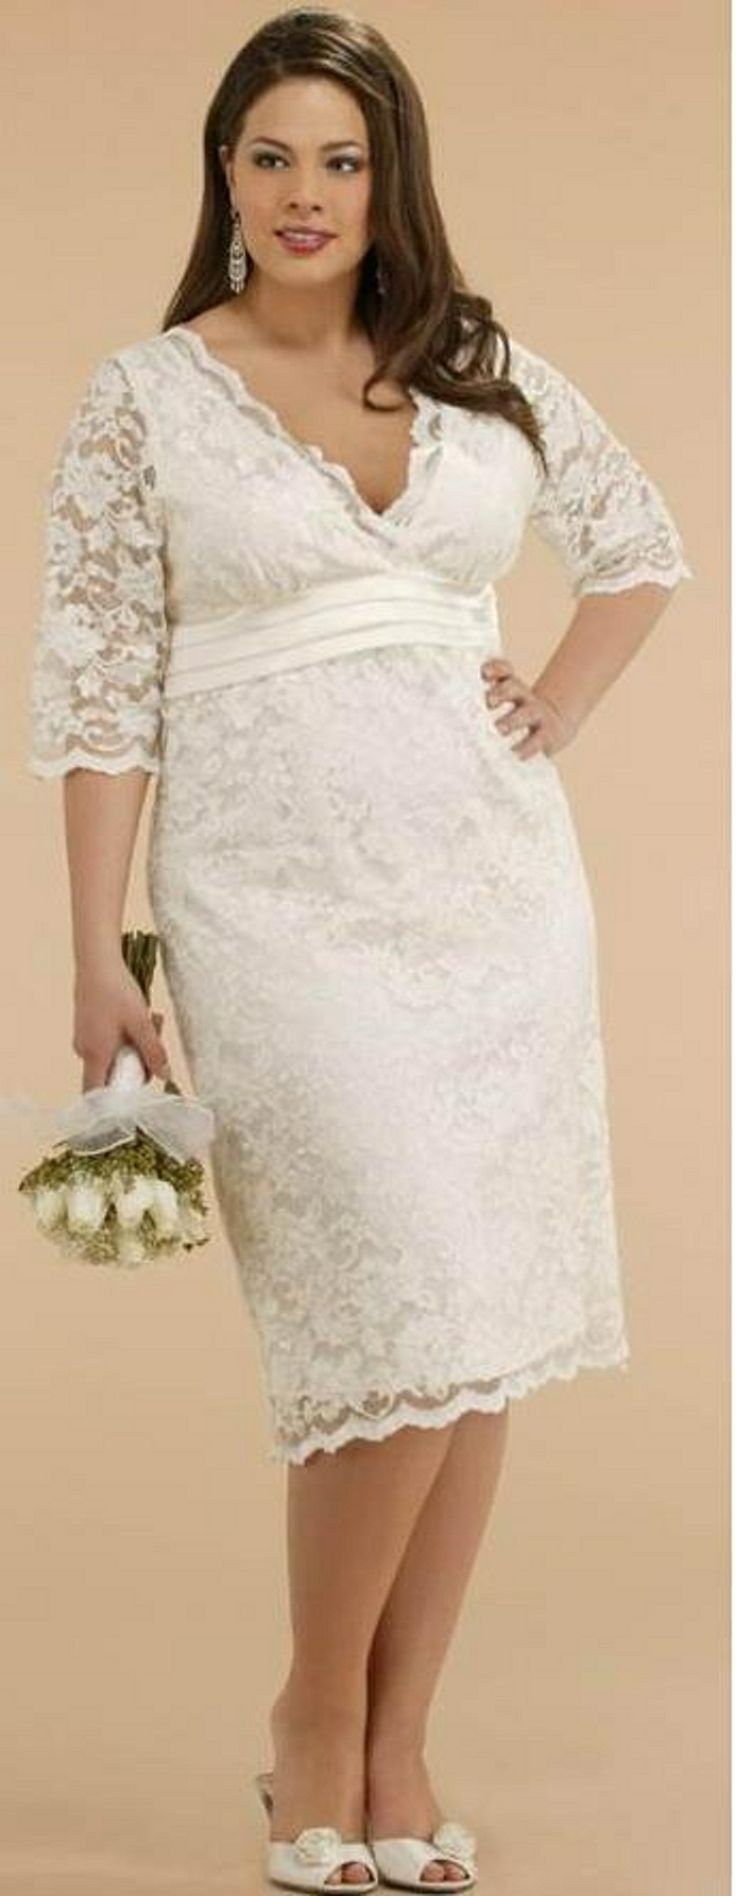 best vow renewal images on pinterest homecoming dresses straps